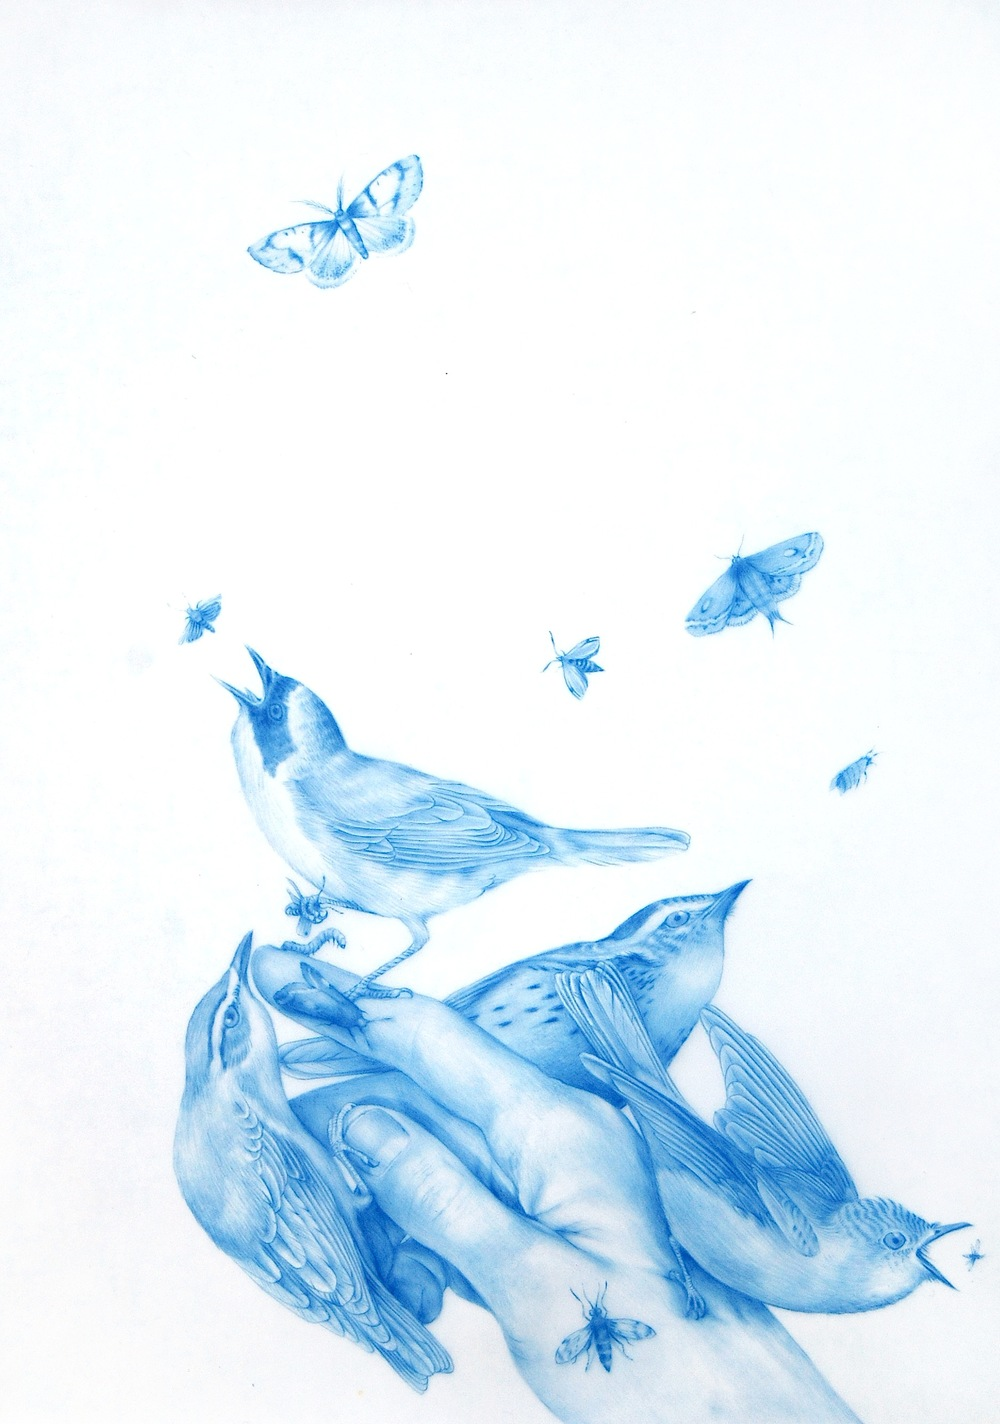 ZACHARI LOGAN, Perch 2, from Wild Man Series, 2015, blue pencil on Mylar, 12 x 9 inches